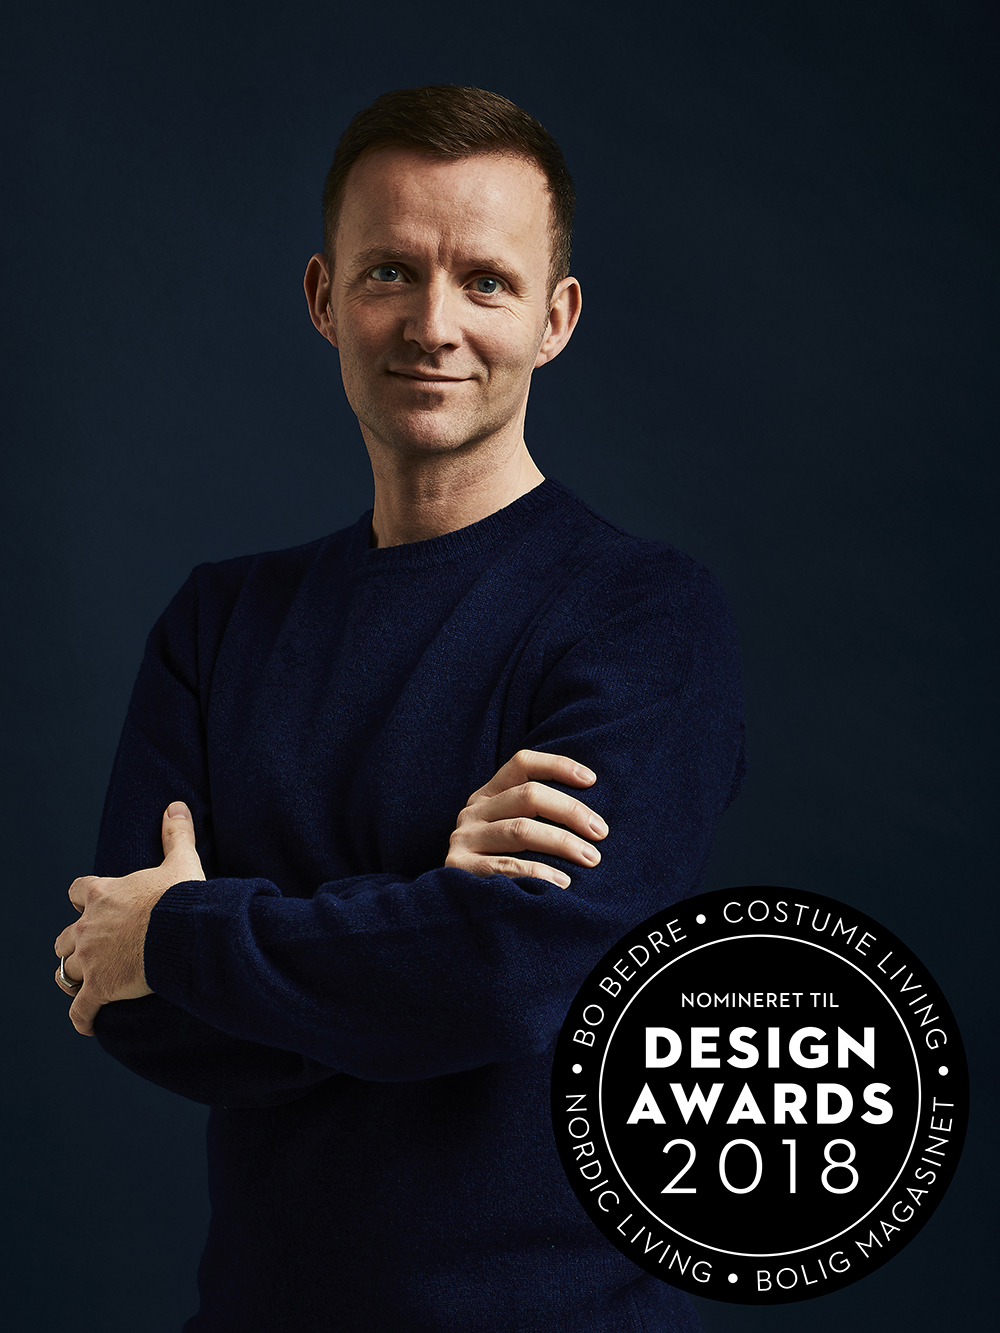 Lars Vejen Nomineret til Årets Designer Design Award 2018 Photo by Dejan Alankhan